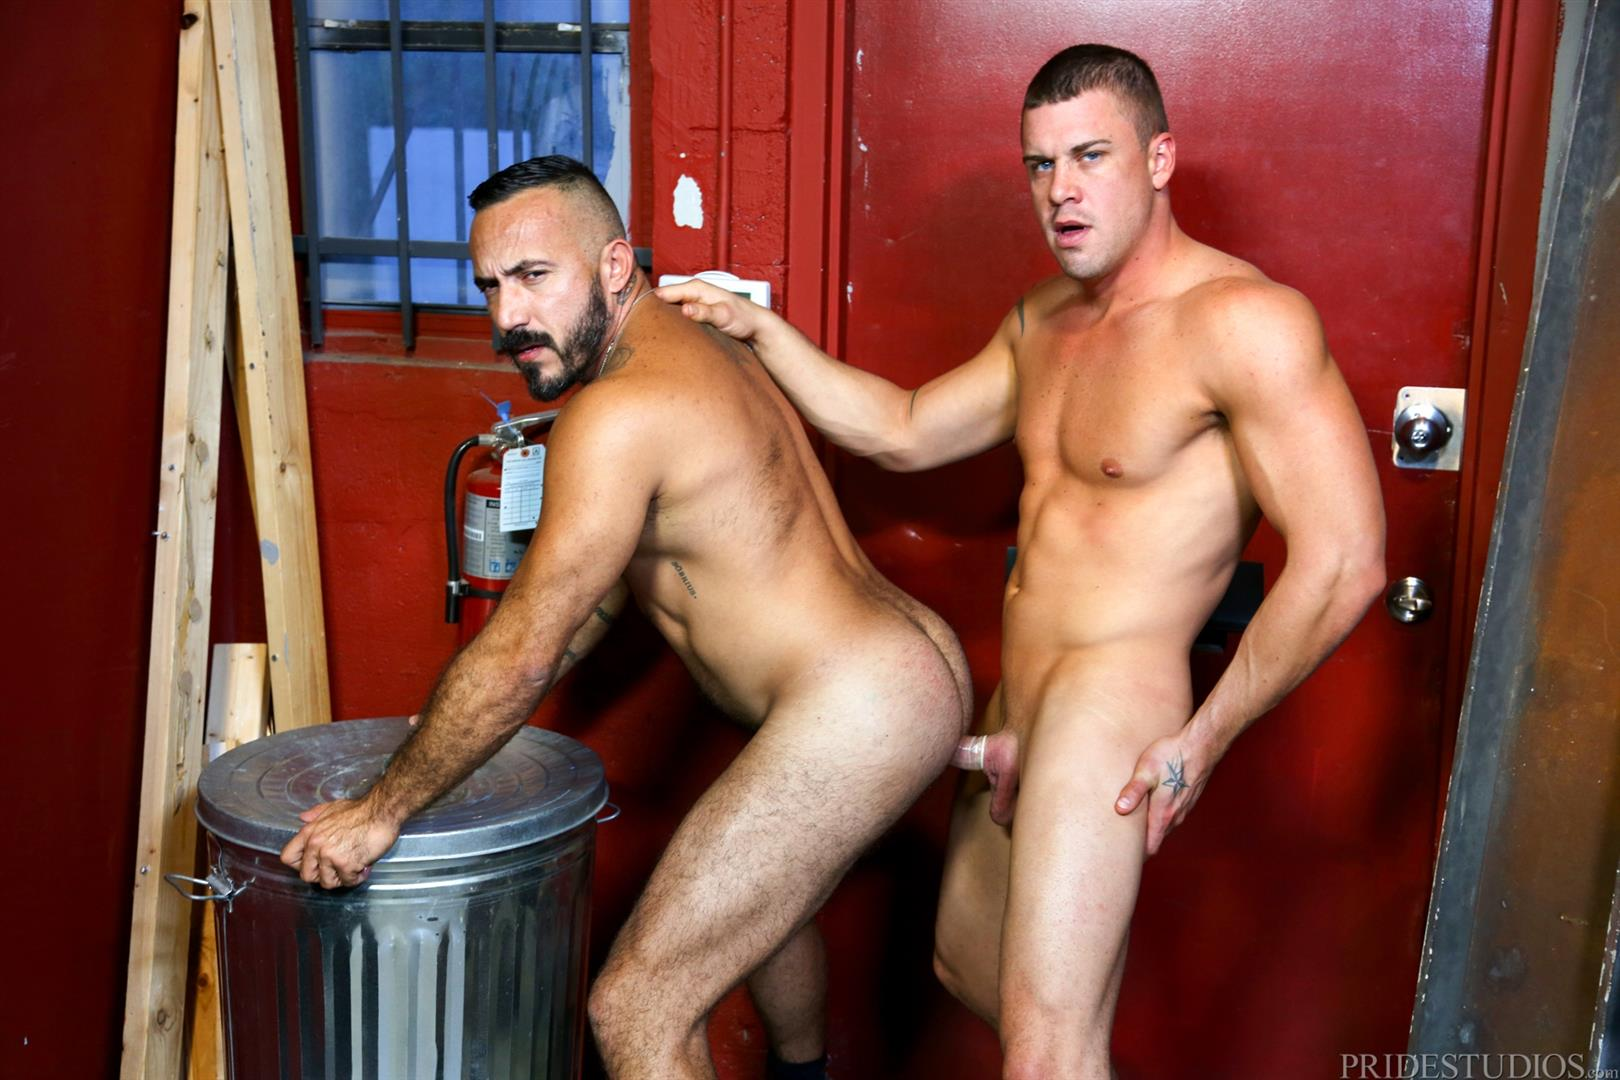 Men-Over-30-Darin-Silvers-and-Alessio-Romero-Hitchhiker-Fucking-Hairy-Ass-Amateur-Gay-Porn-12 Alessio Romero Picks Up A Hitchhiker And Gets Fucked In The Ass